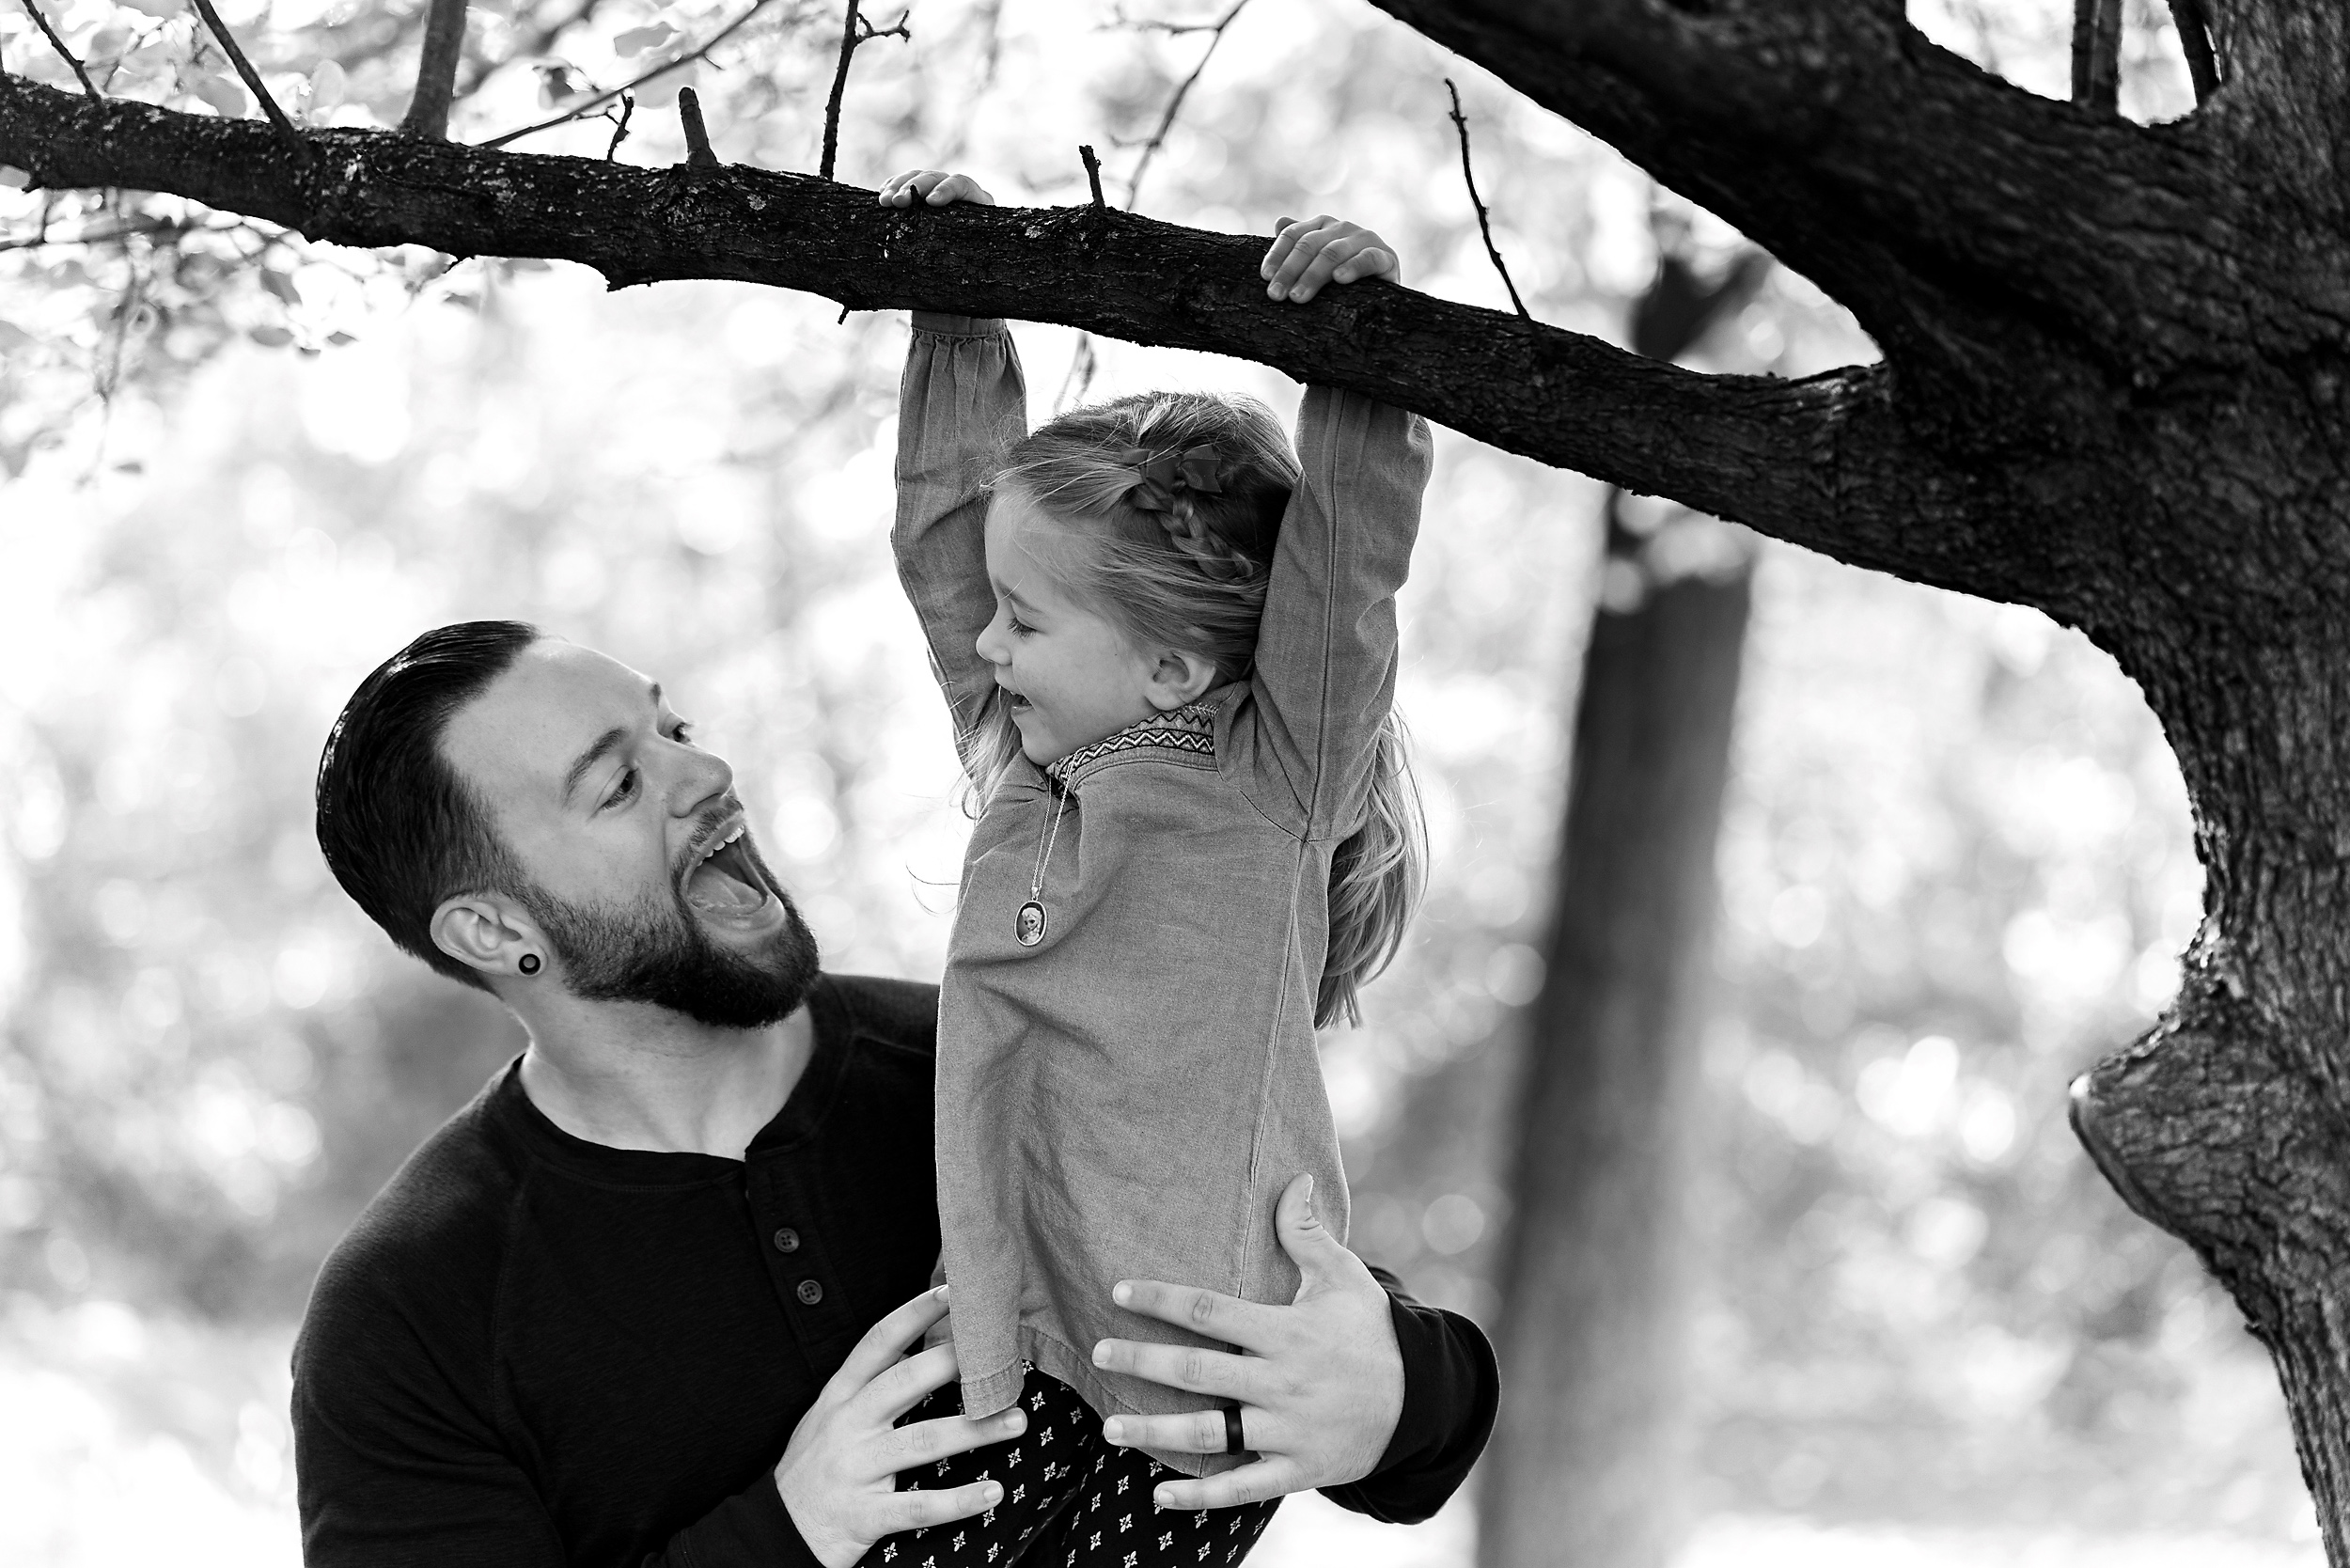 CIncinnati Candid Black White Family Photography.jpg